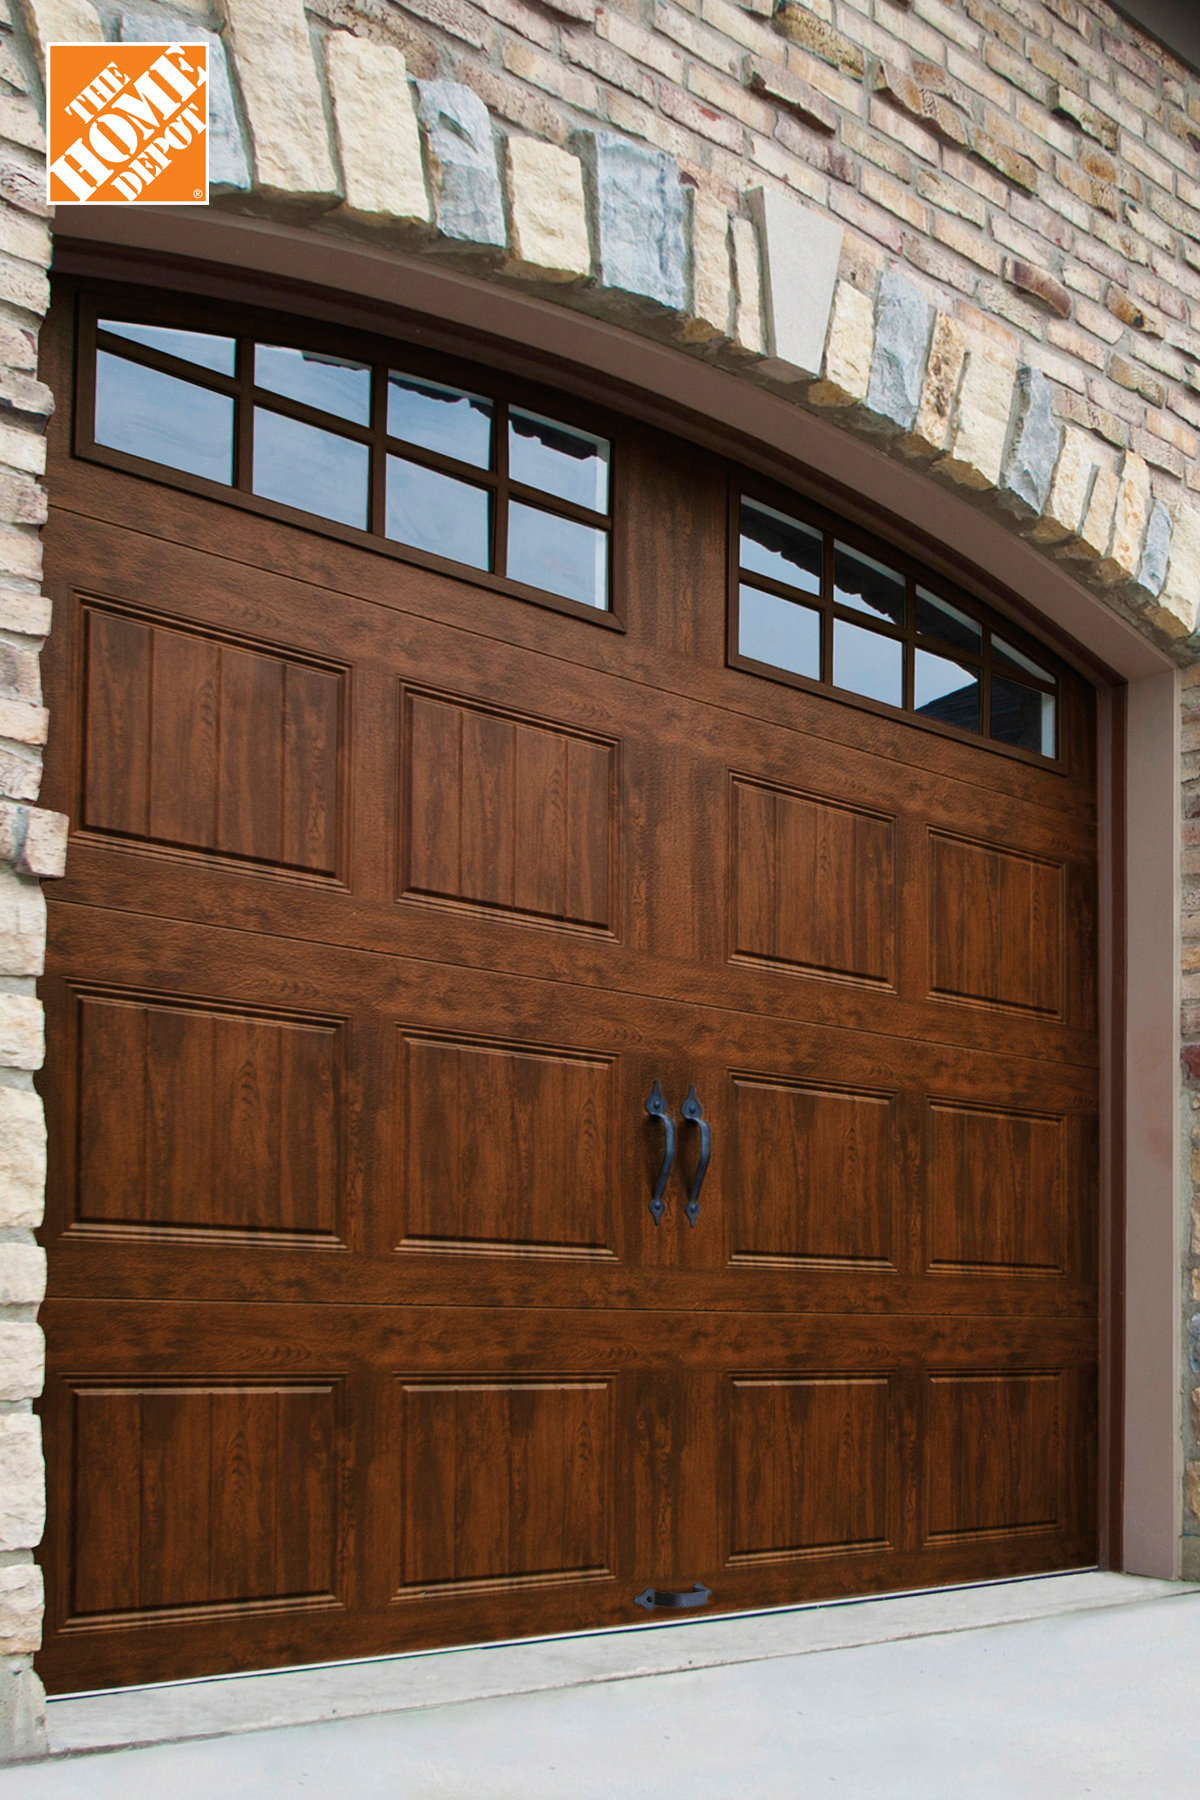 Update Your Garage Doors Garage Doors Garage Door Design House Exterior